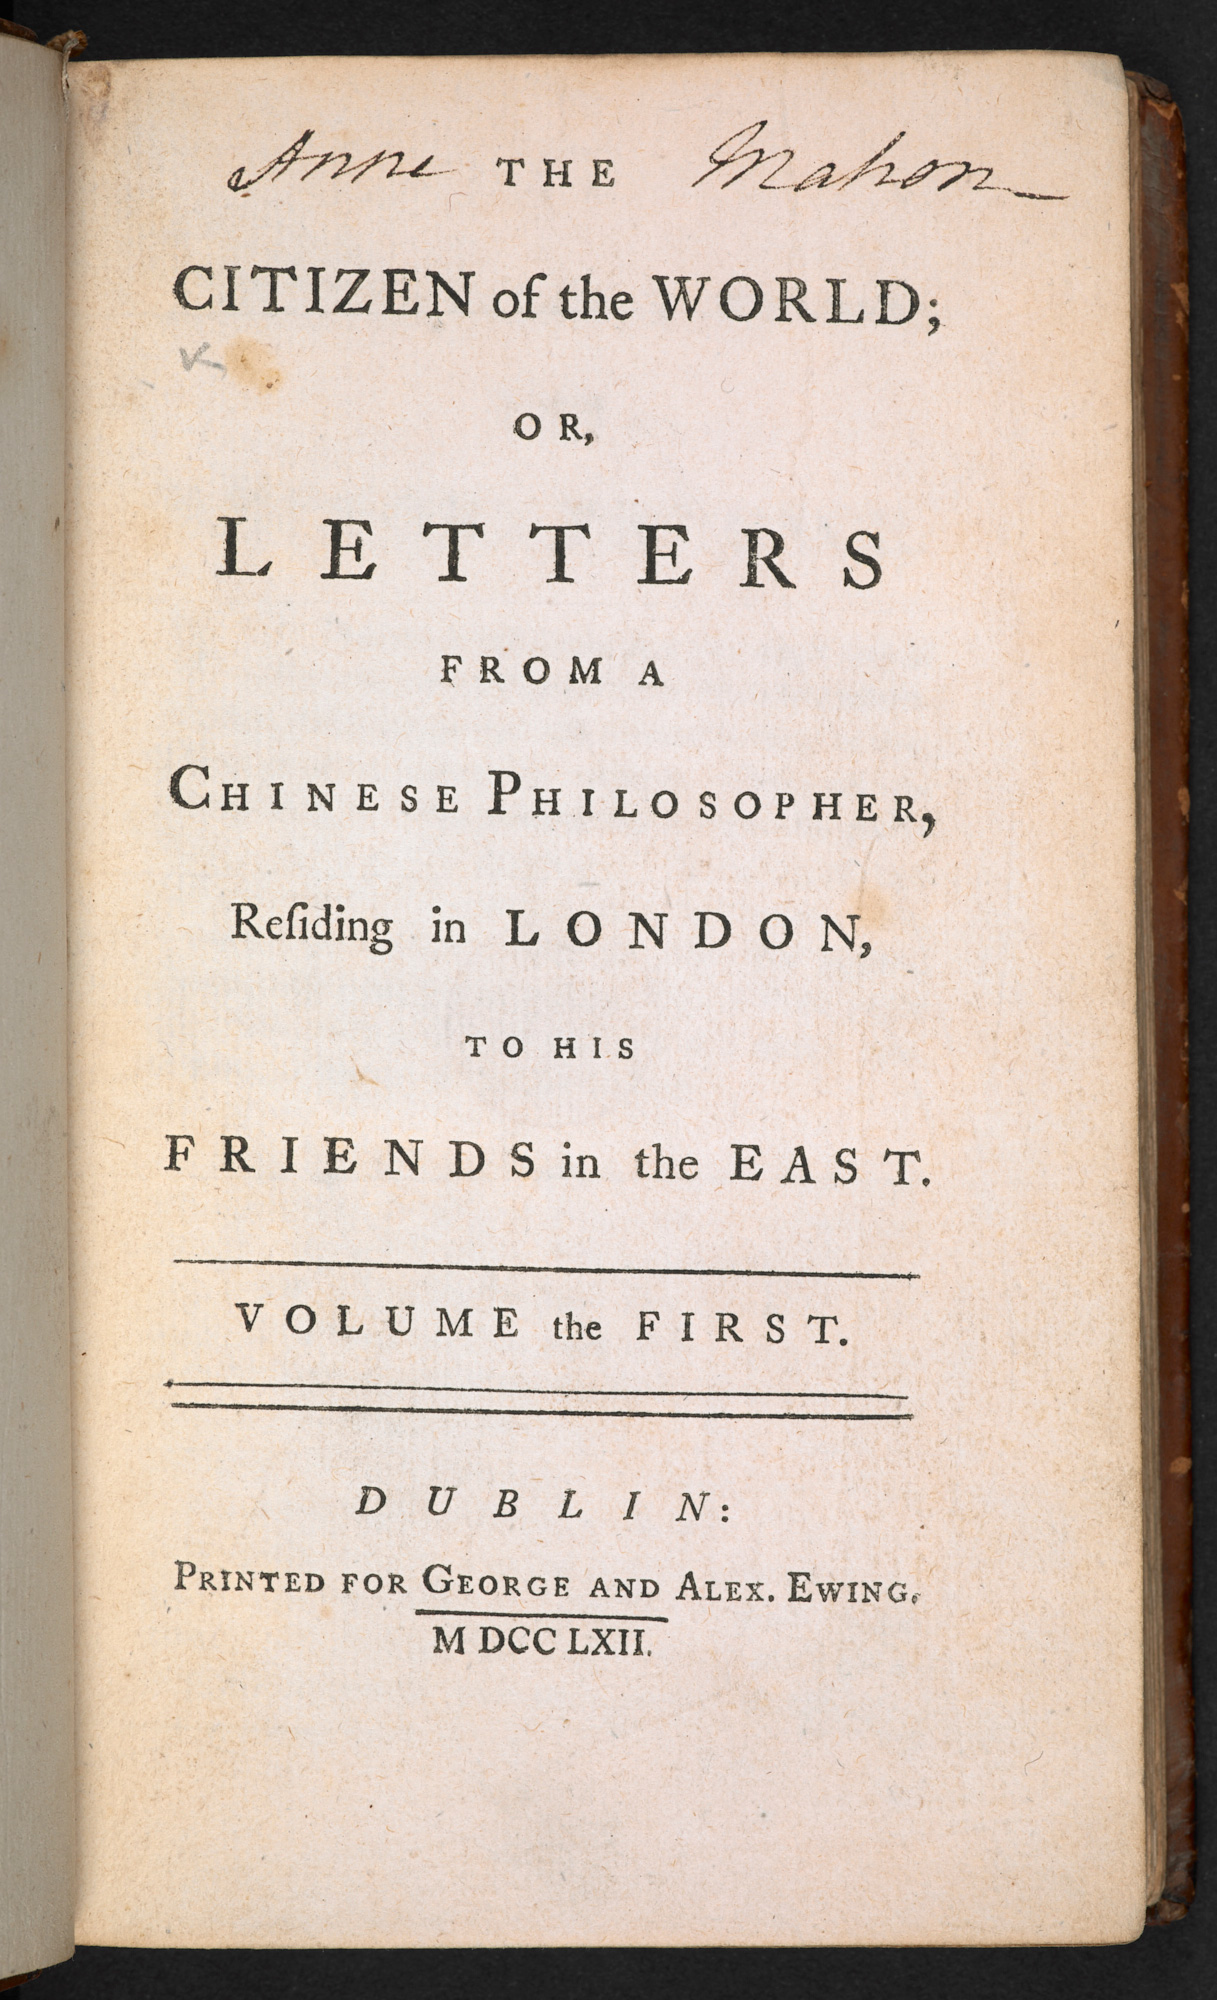 The Citizen of the World; or, Letters from a Chinese Philosopher, 1762